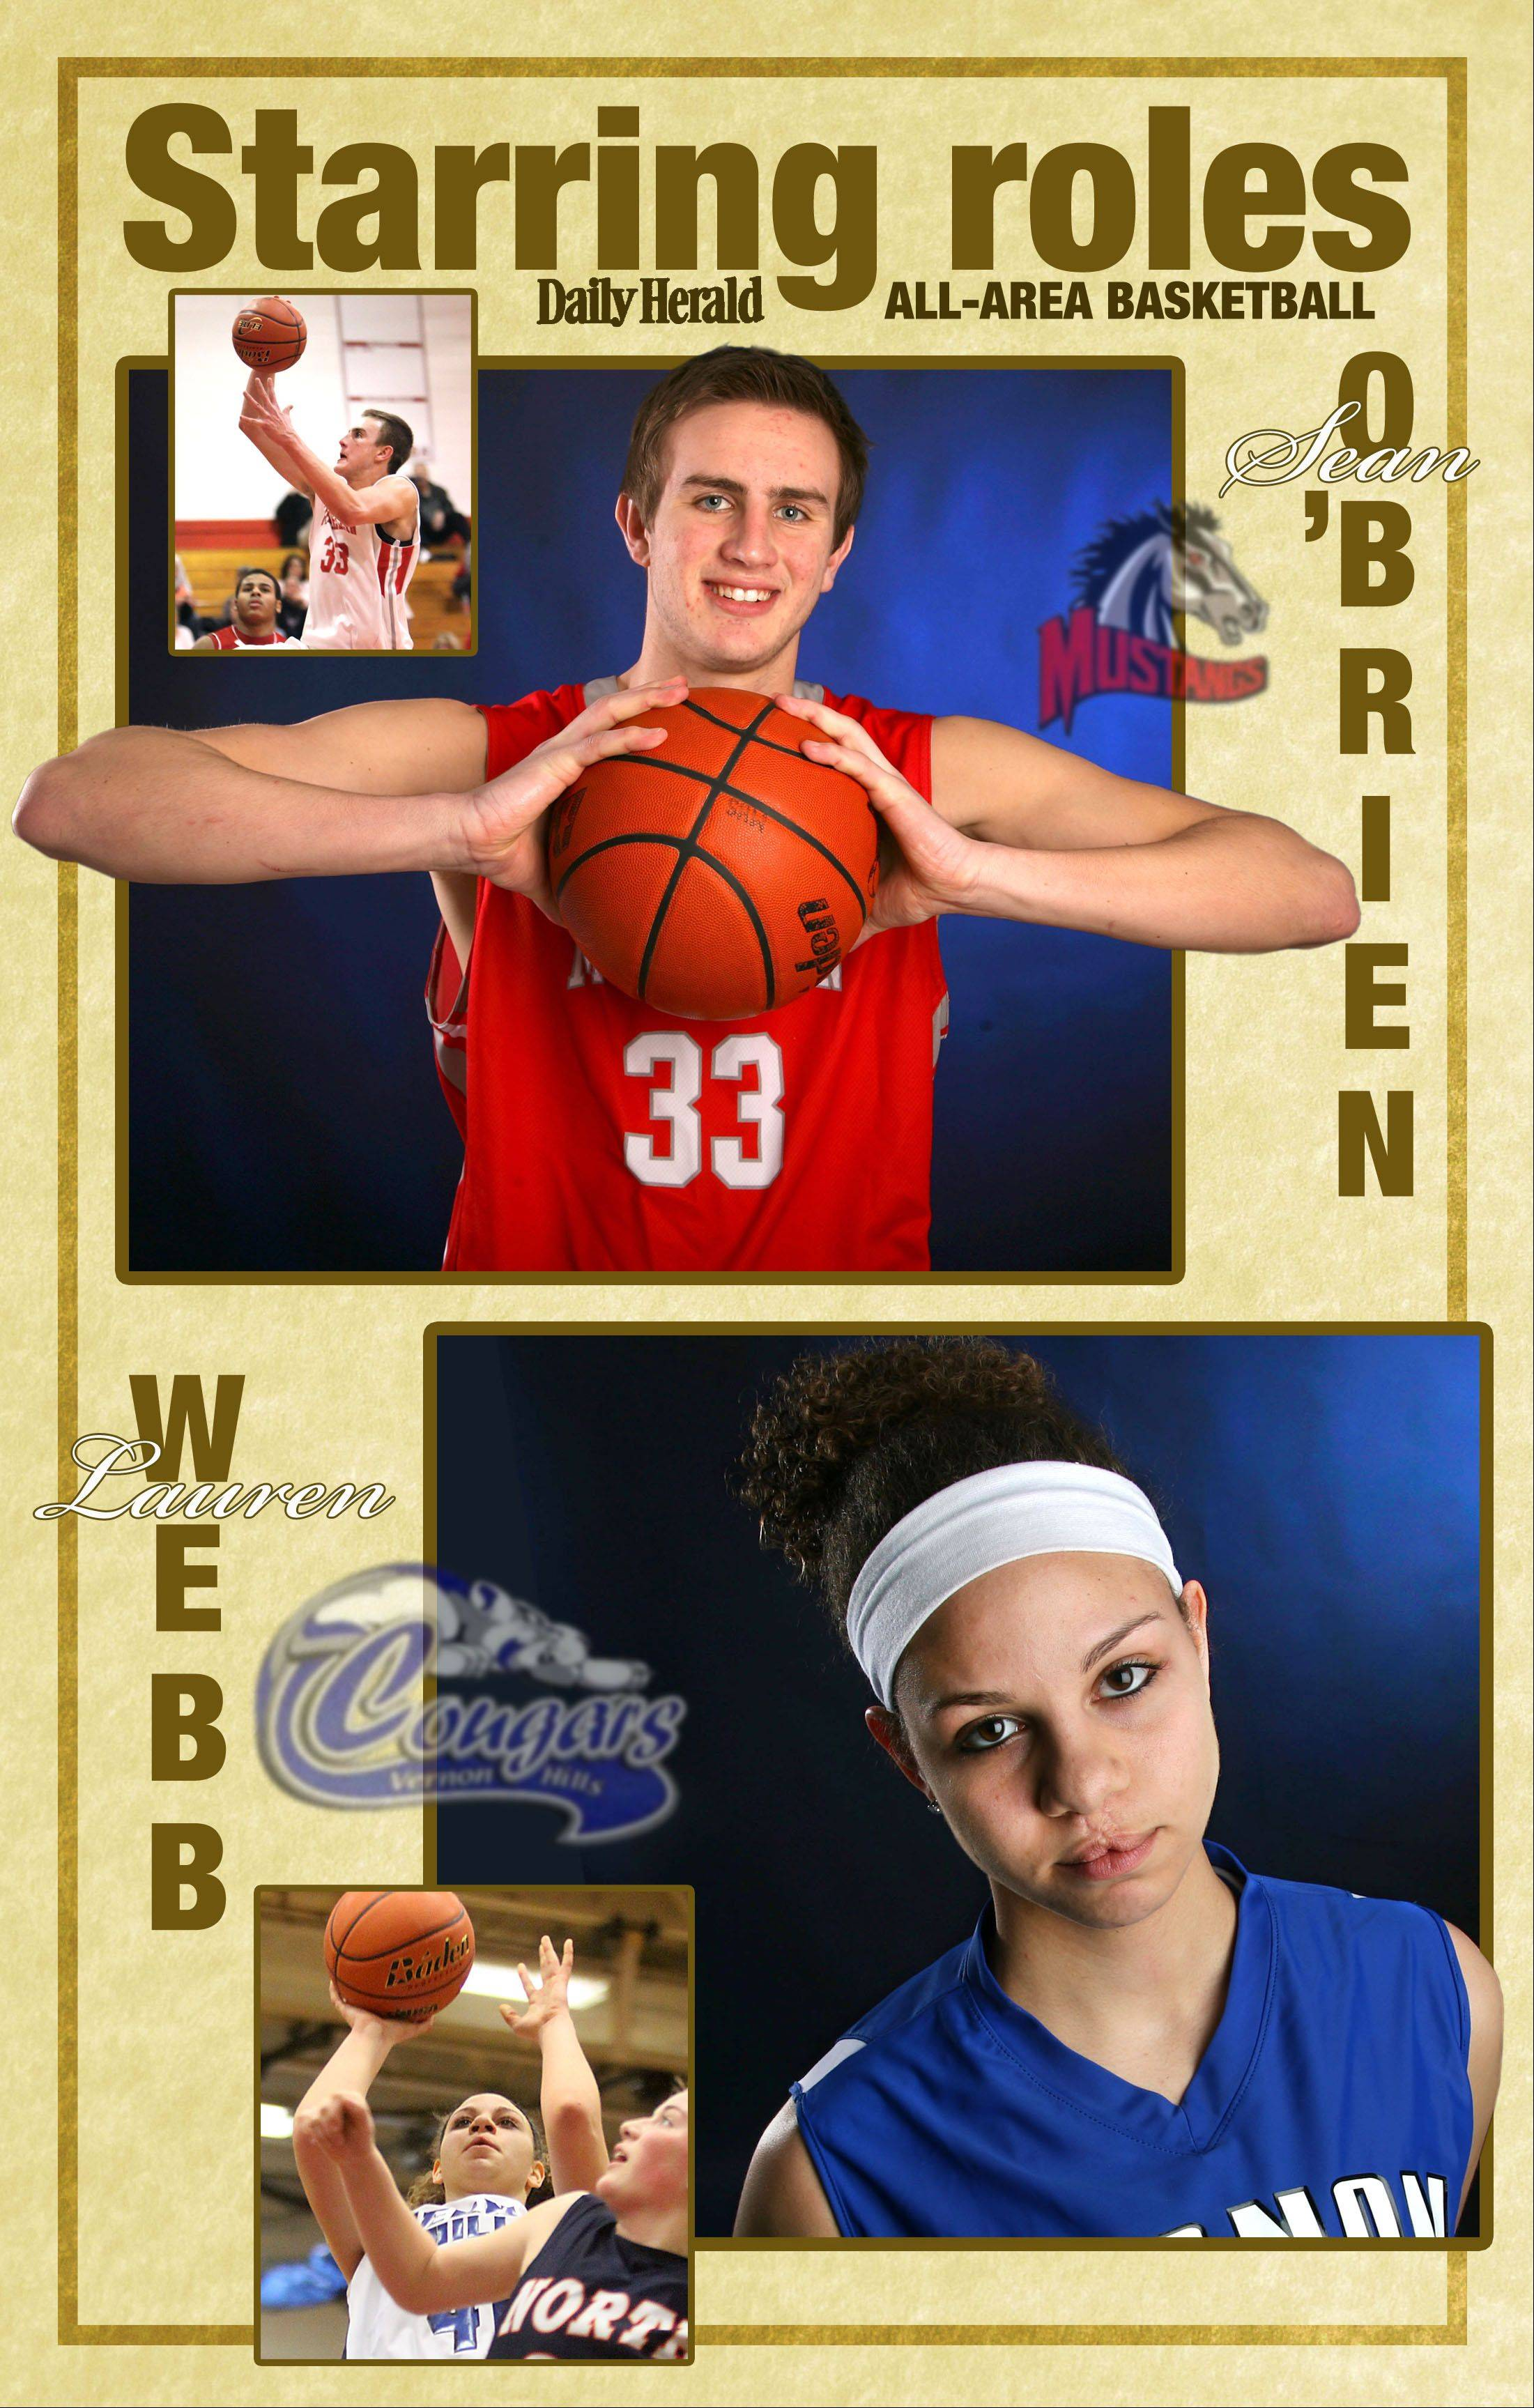 All-area Daily Herald basketball players in Lake County are Sean O'Brien of Mundelein and Lauren Webb of Vernon Hills.